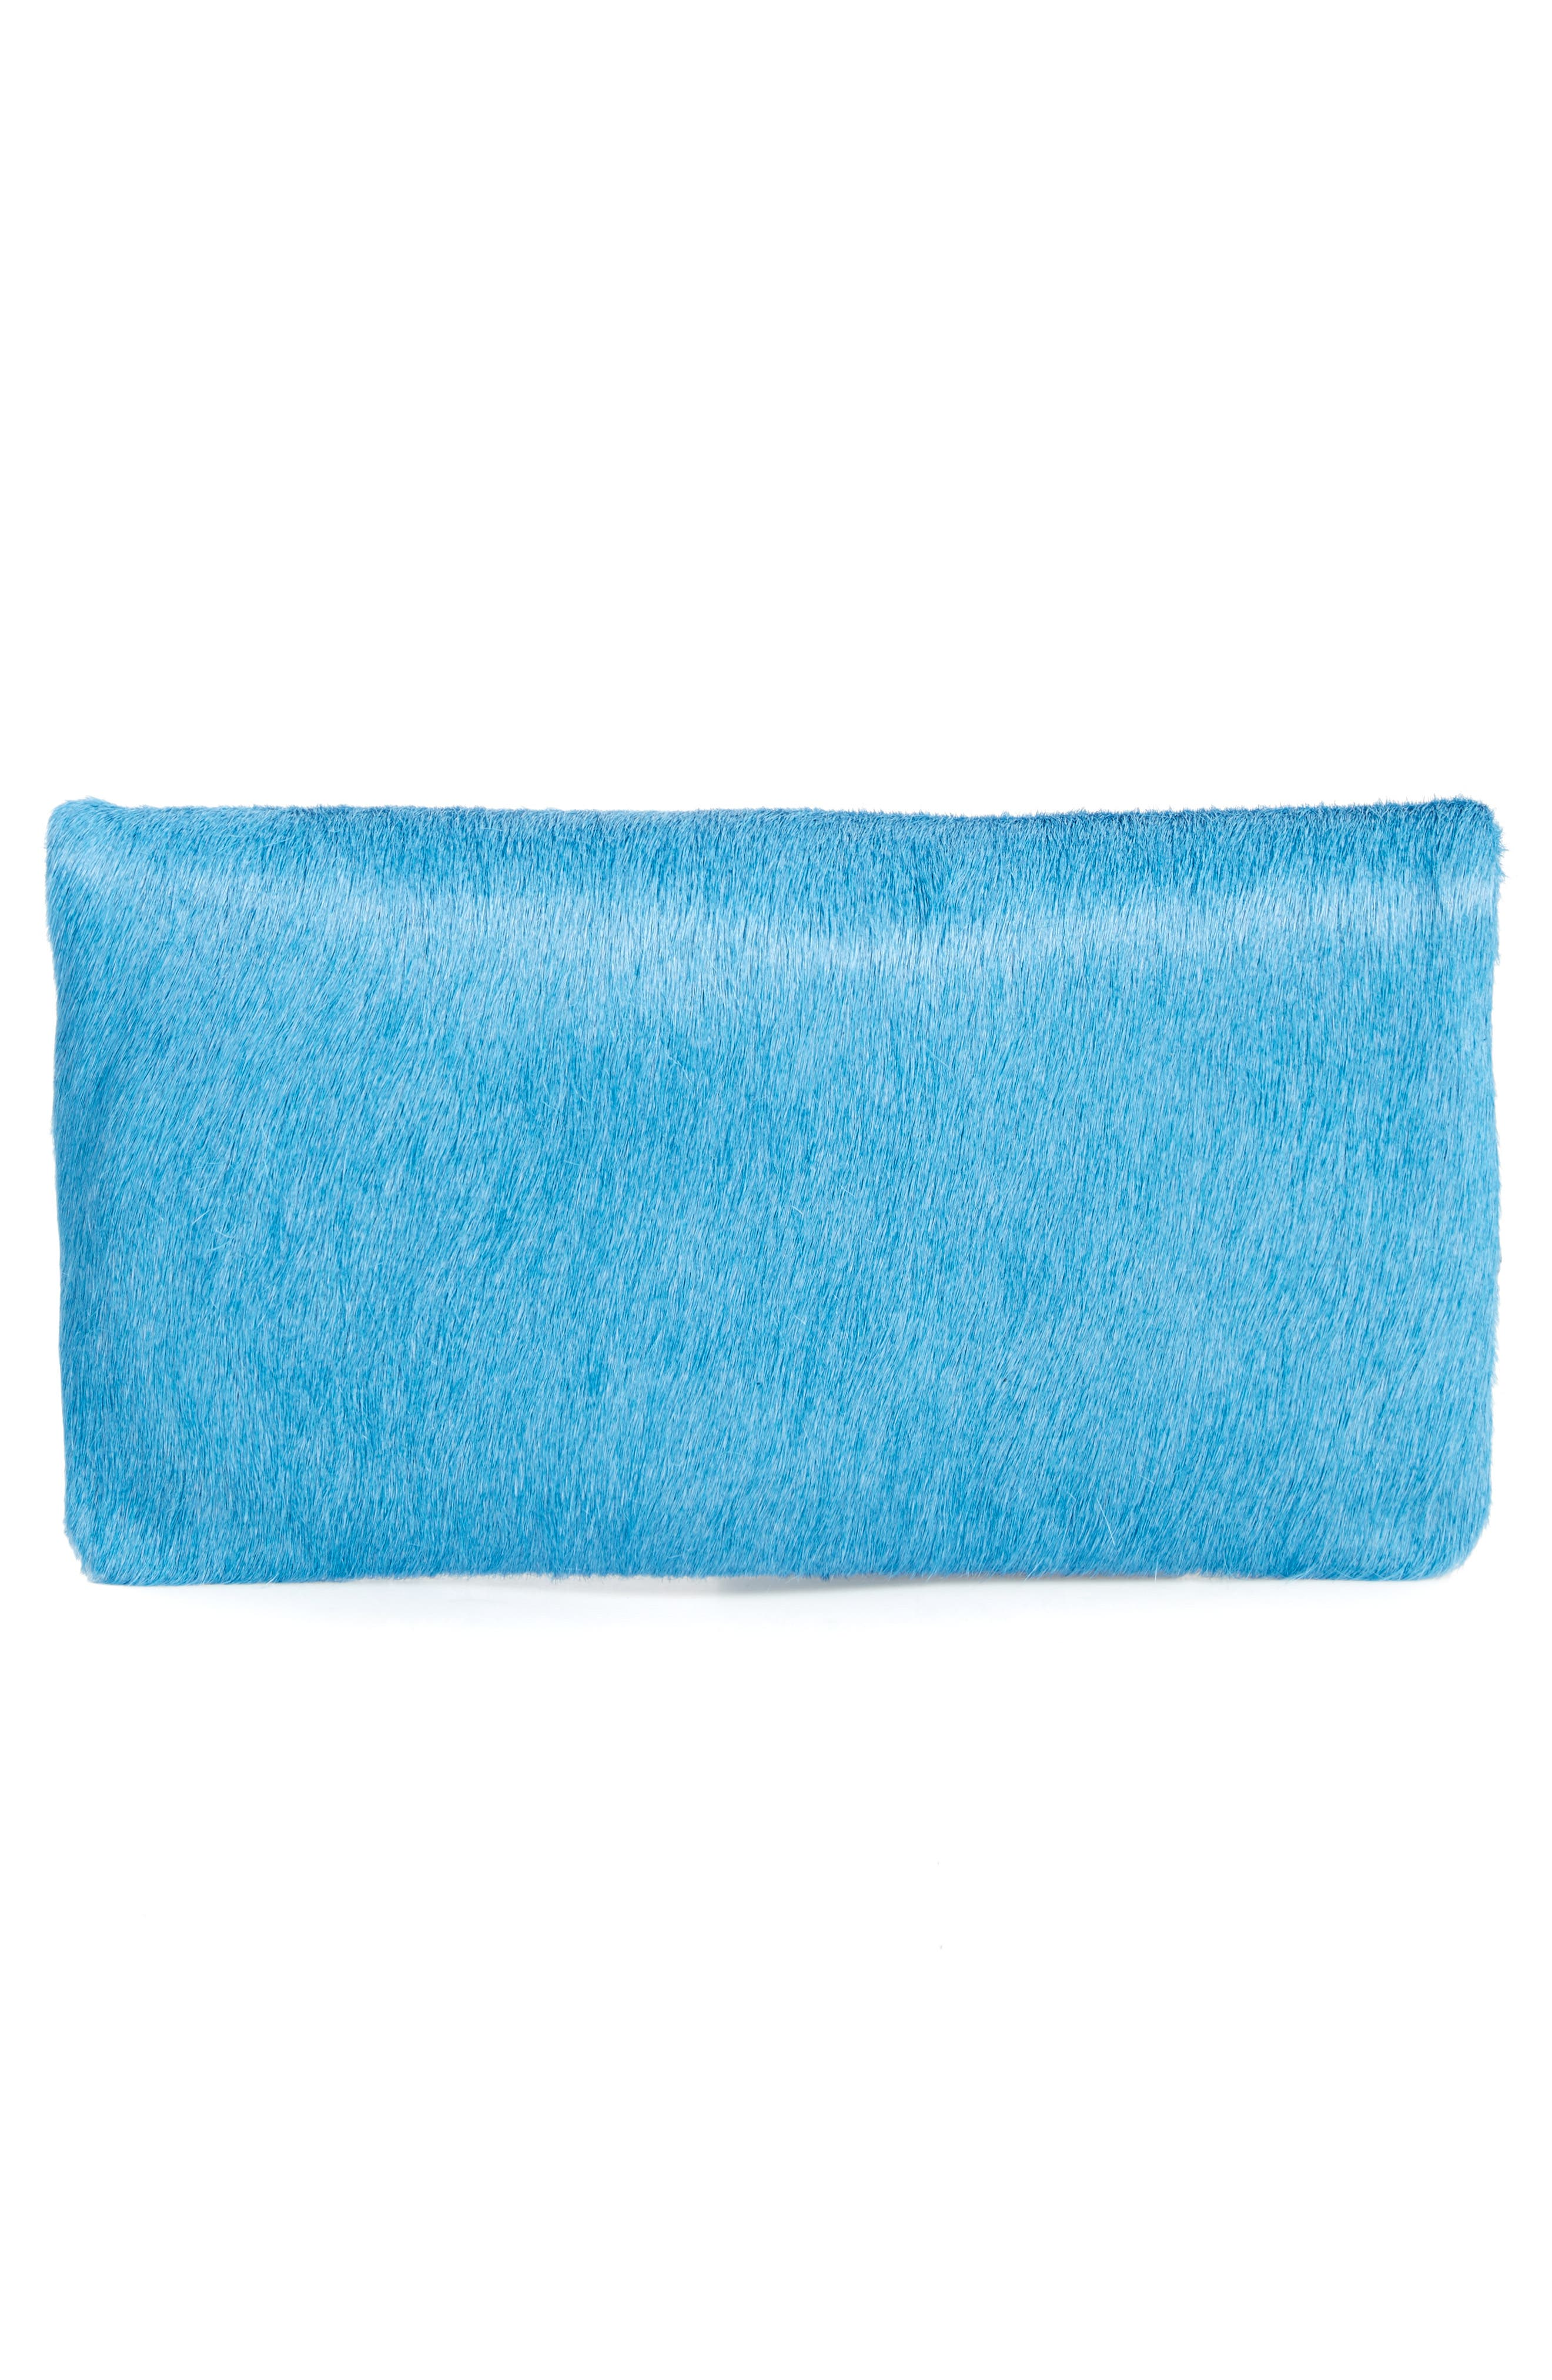 Genuine Calf Hair Foldover Clutch,                             Alternate thumbnail 3, color,                             400